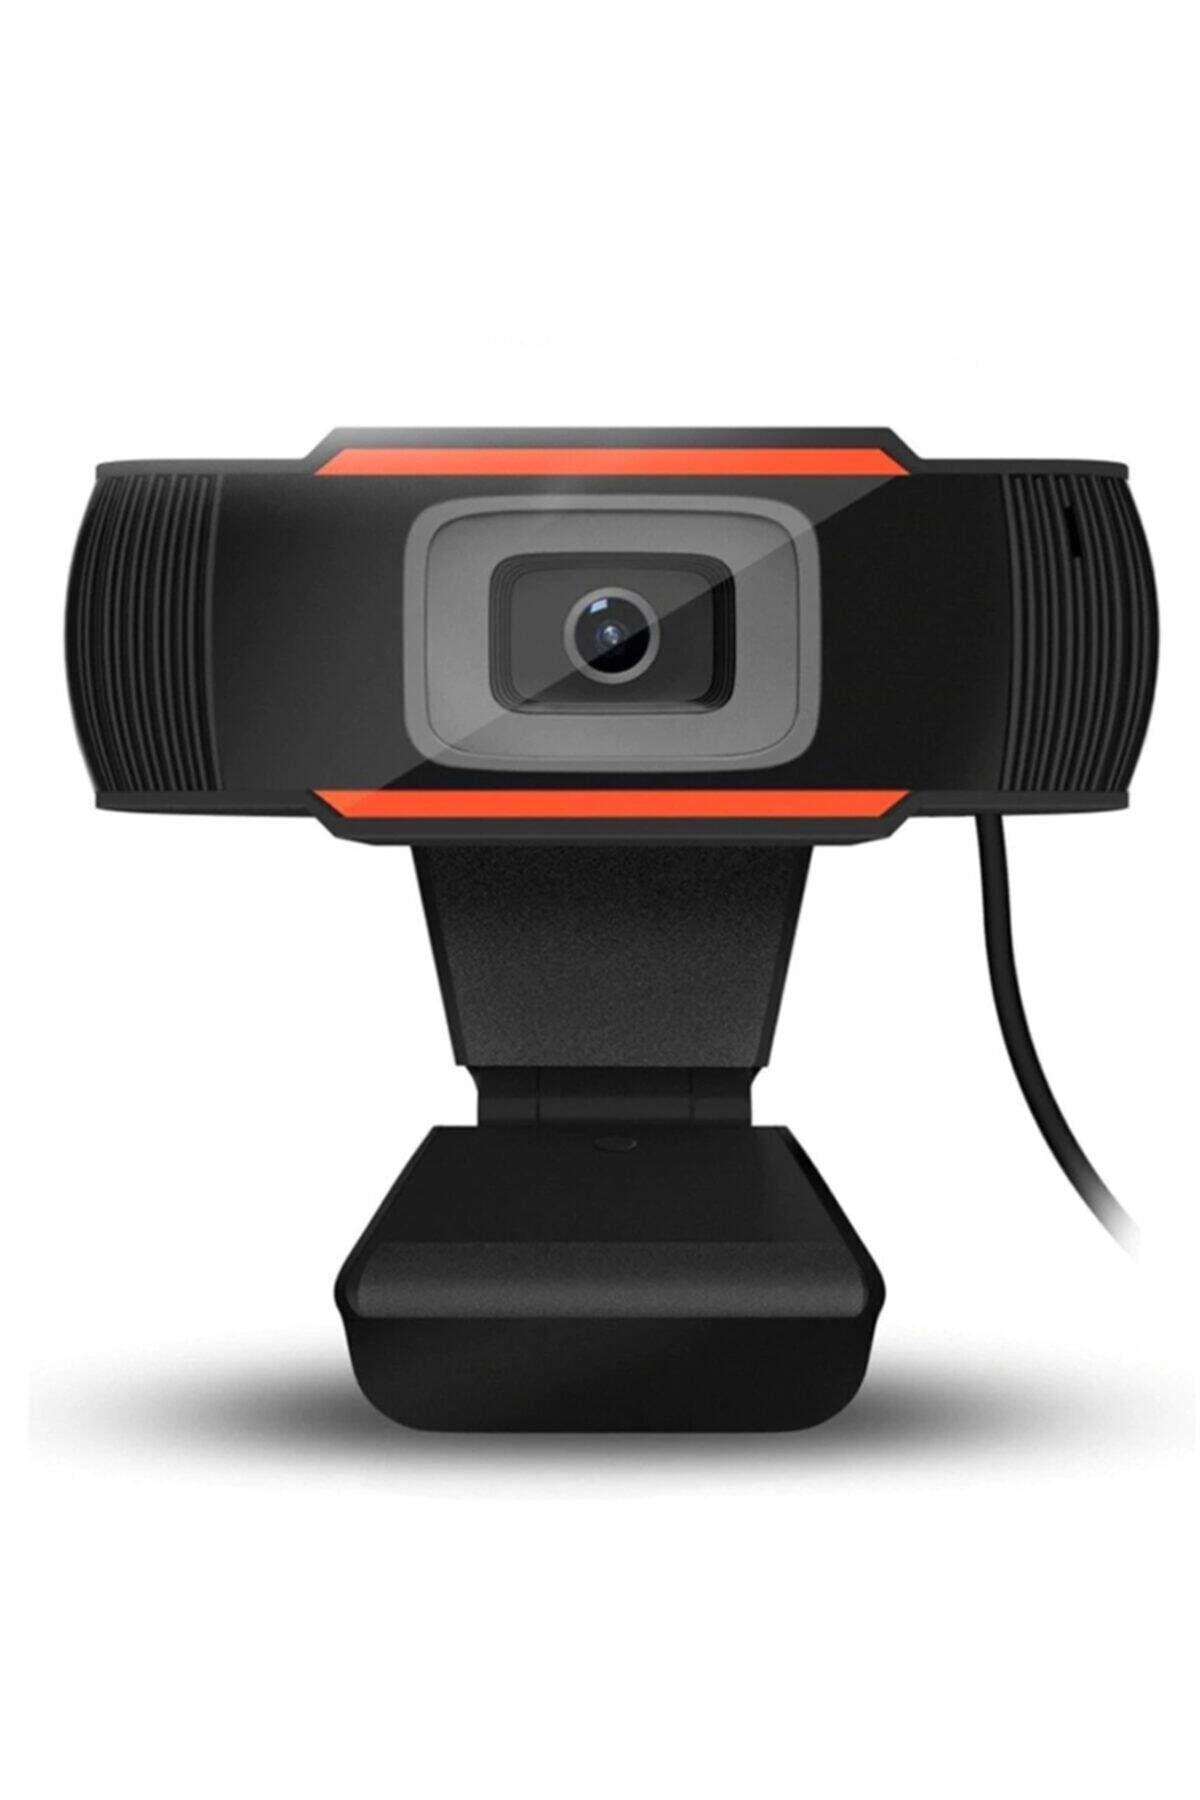 Microcase Mikrofonlu Full Hd Webcam Kamera 1080p 30 Fps Al2542 1